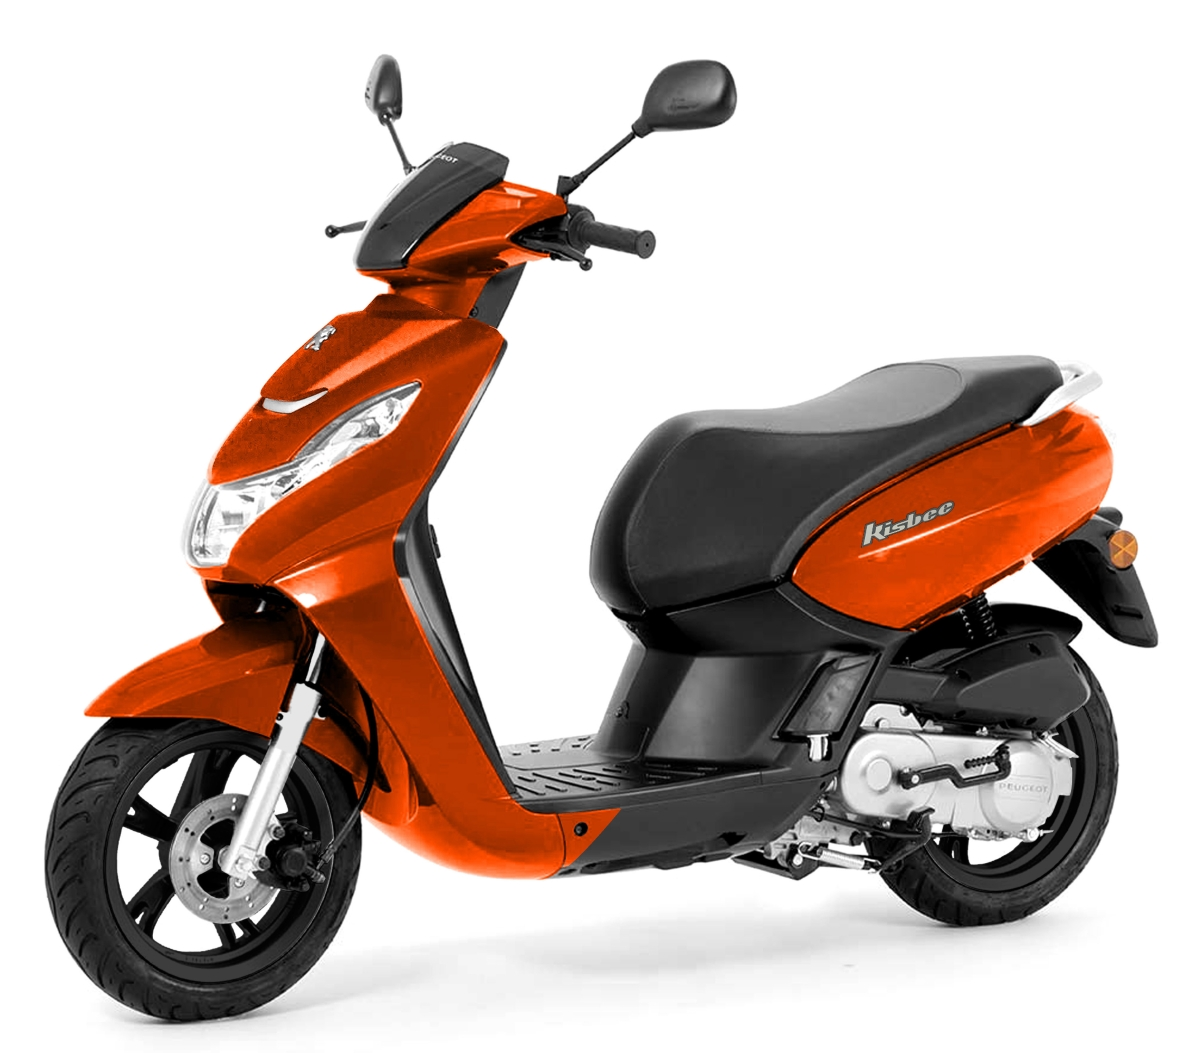 Kisbee 50i 2T Active - Orange